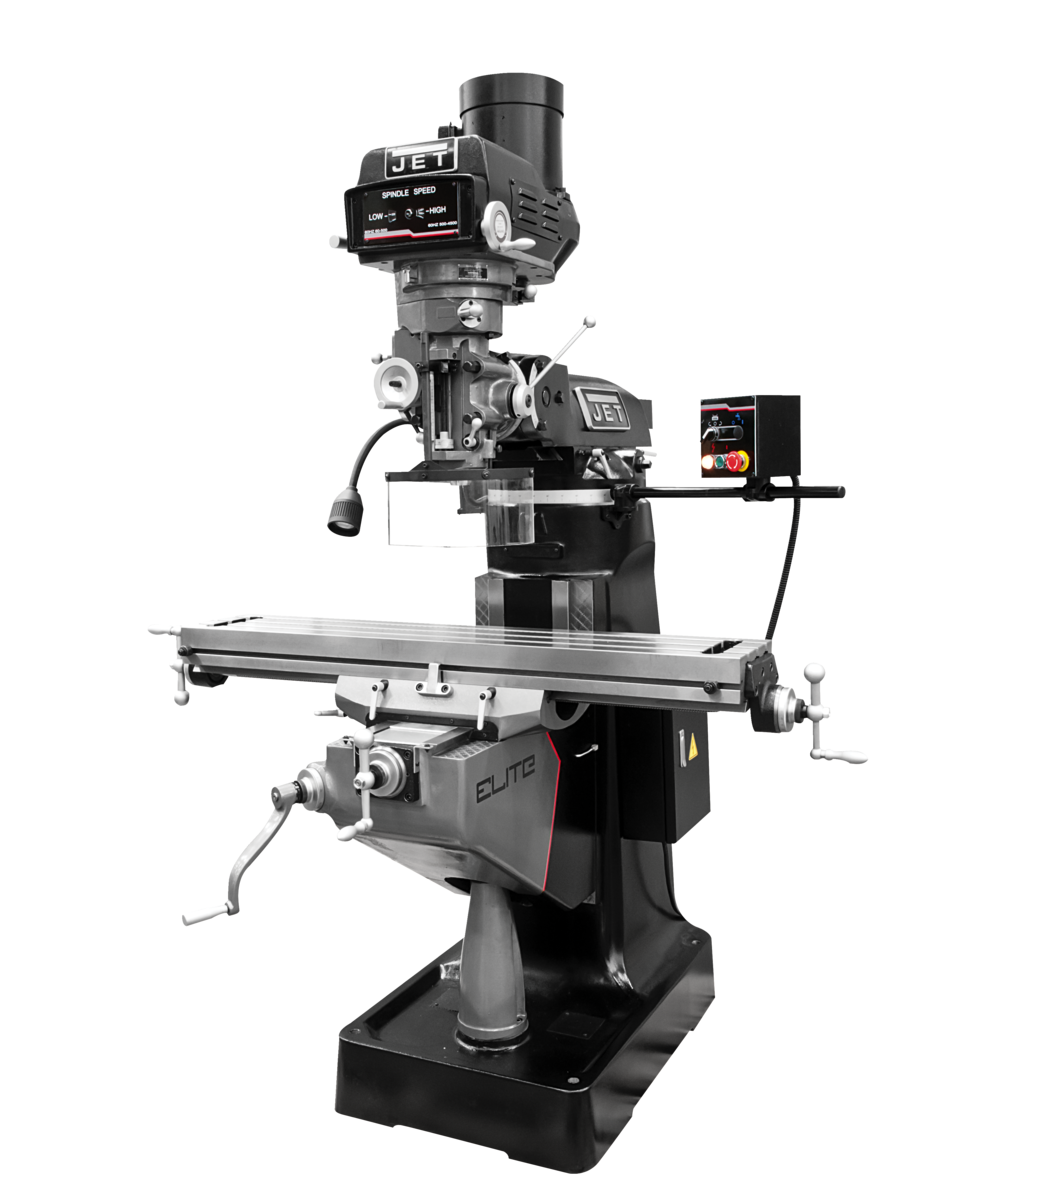 ETM-949 Mill with 2-Axis ACU-RITE 203 DRO and X, Y, Z-Axis JET Powerfeeds